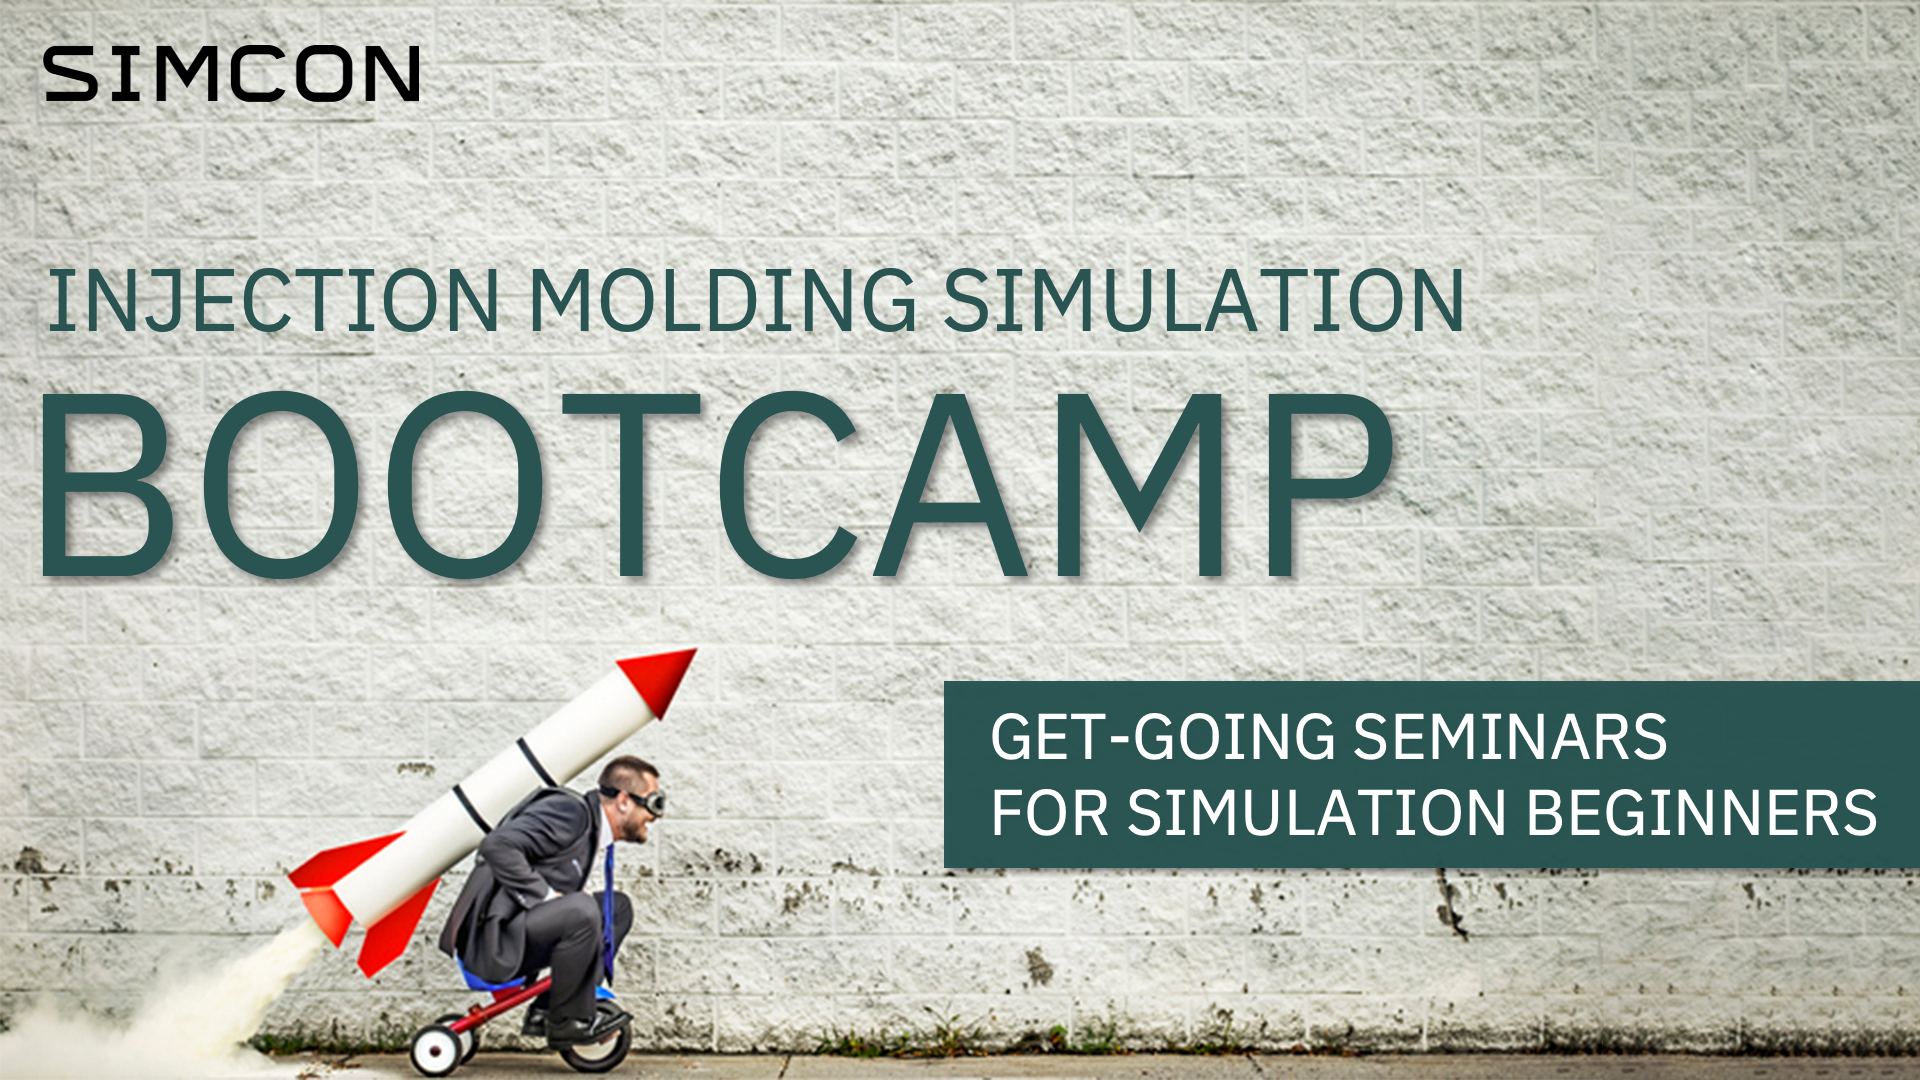 CADMOULD Bootcamp: get-going seminars for simulation beginners